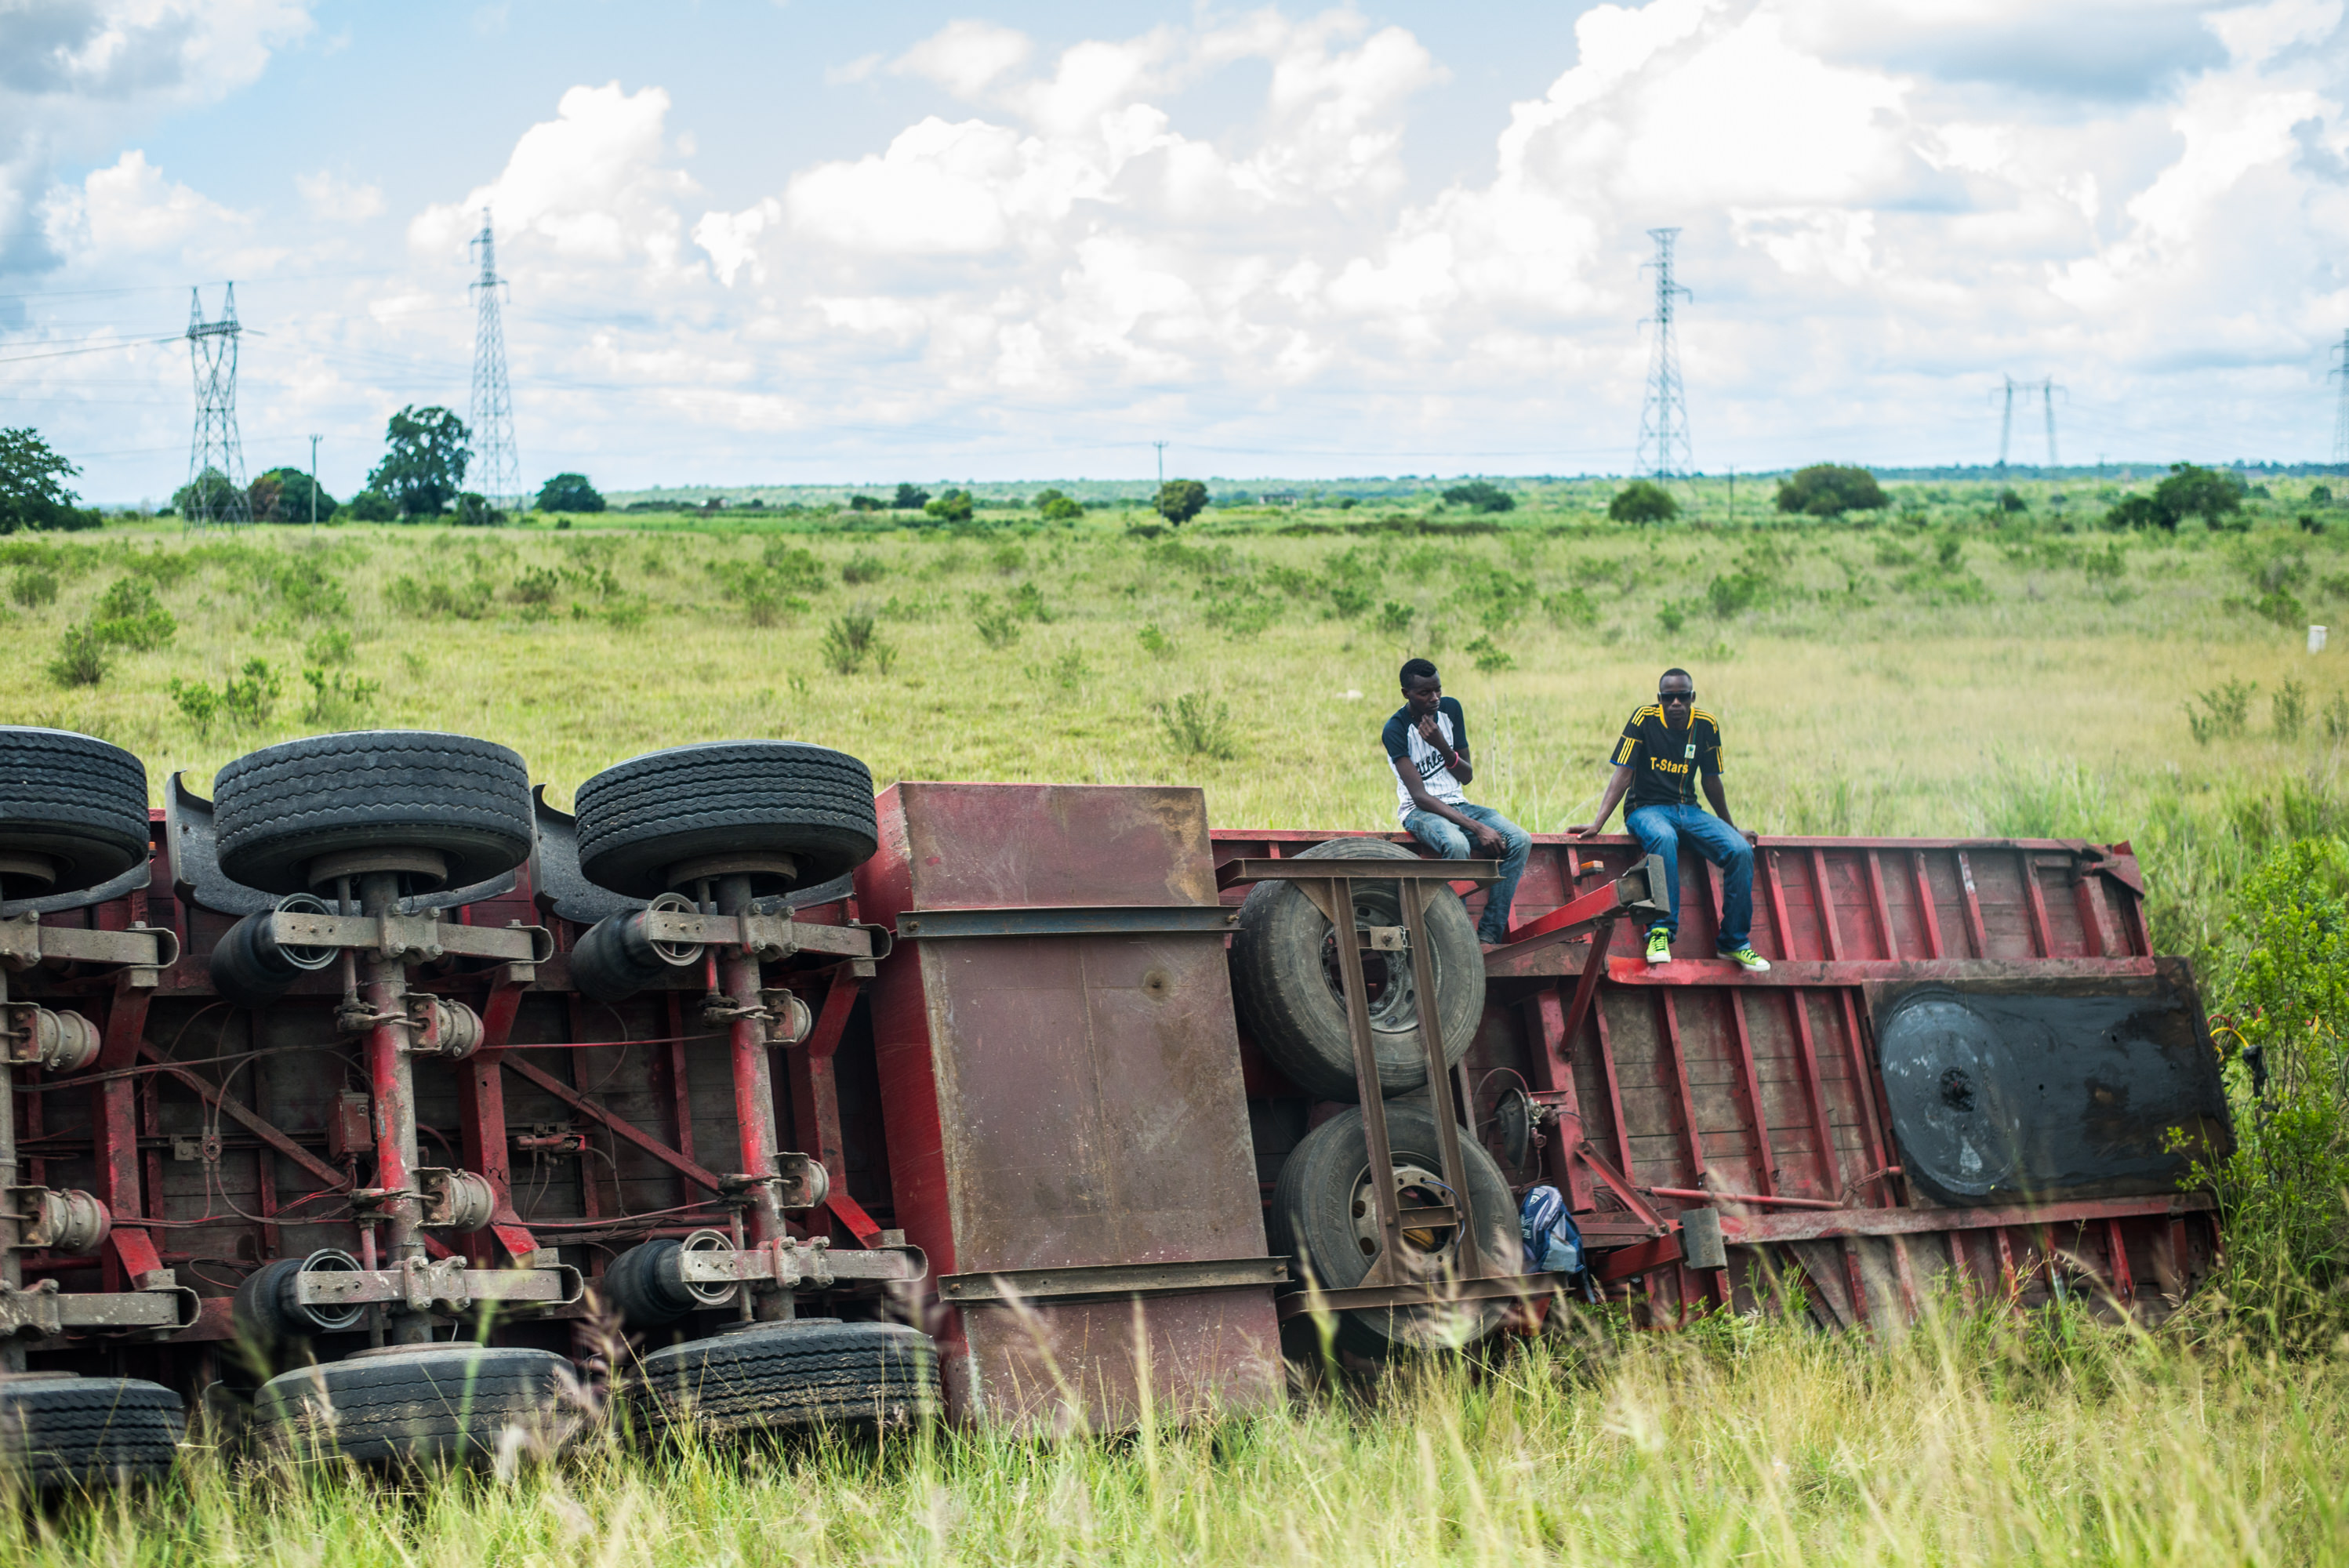 Two men sit on overturned truck by the side of the road in Tanzania.